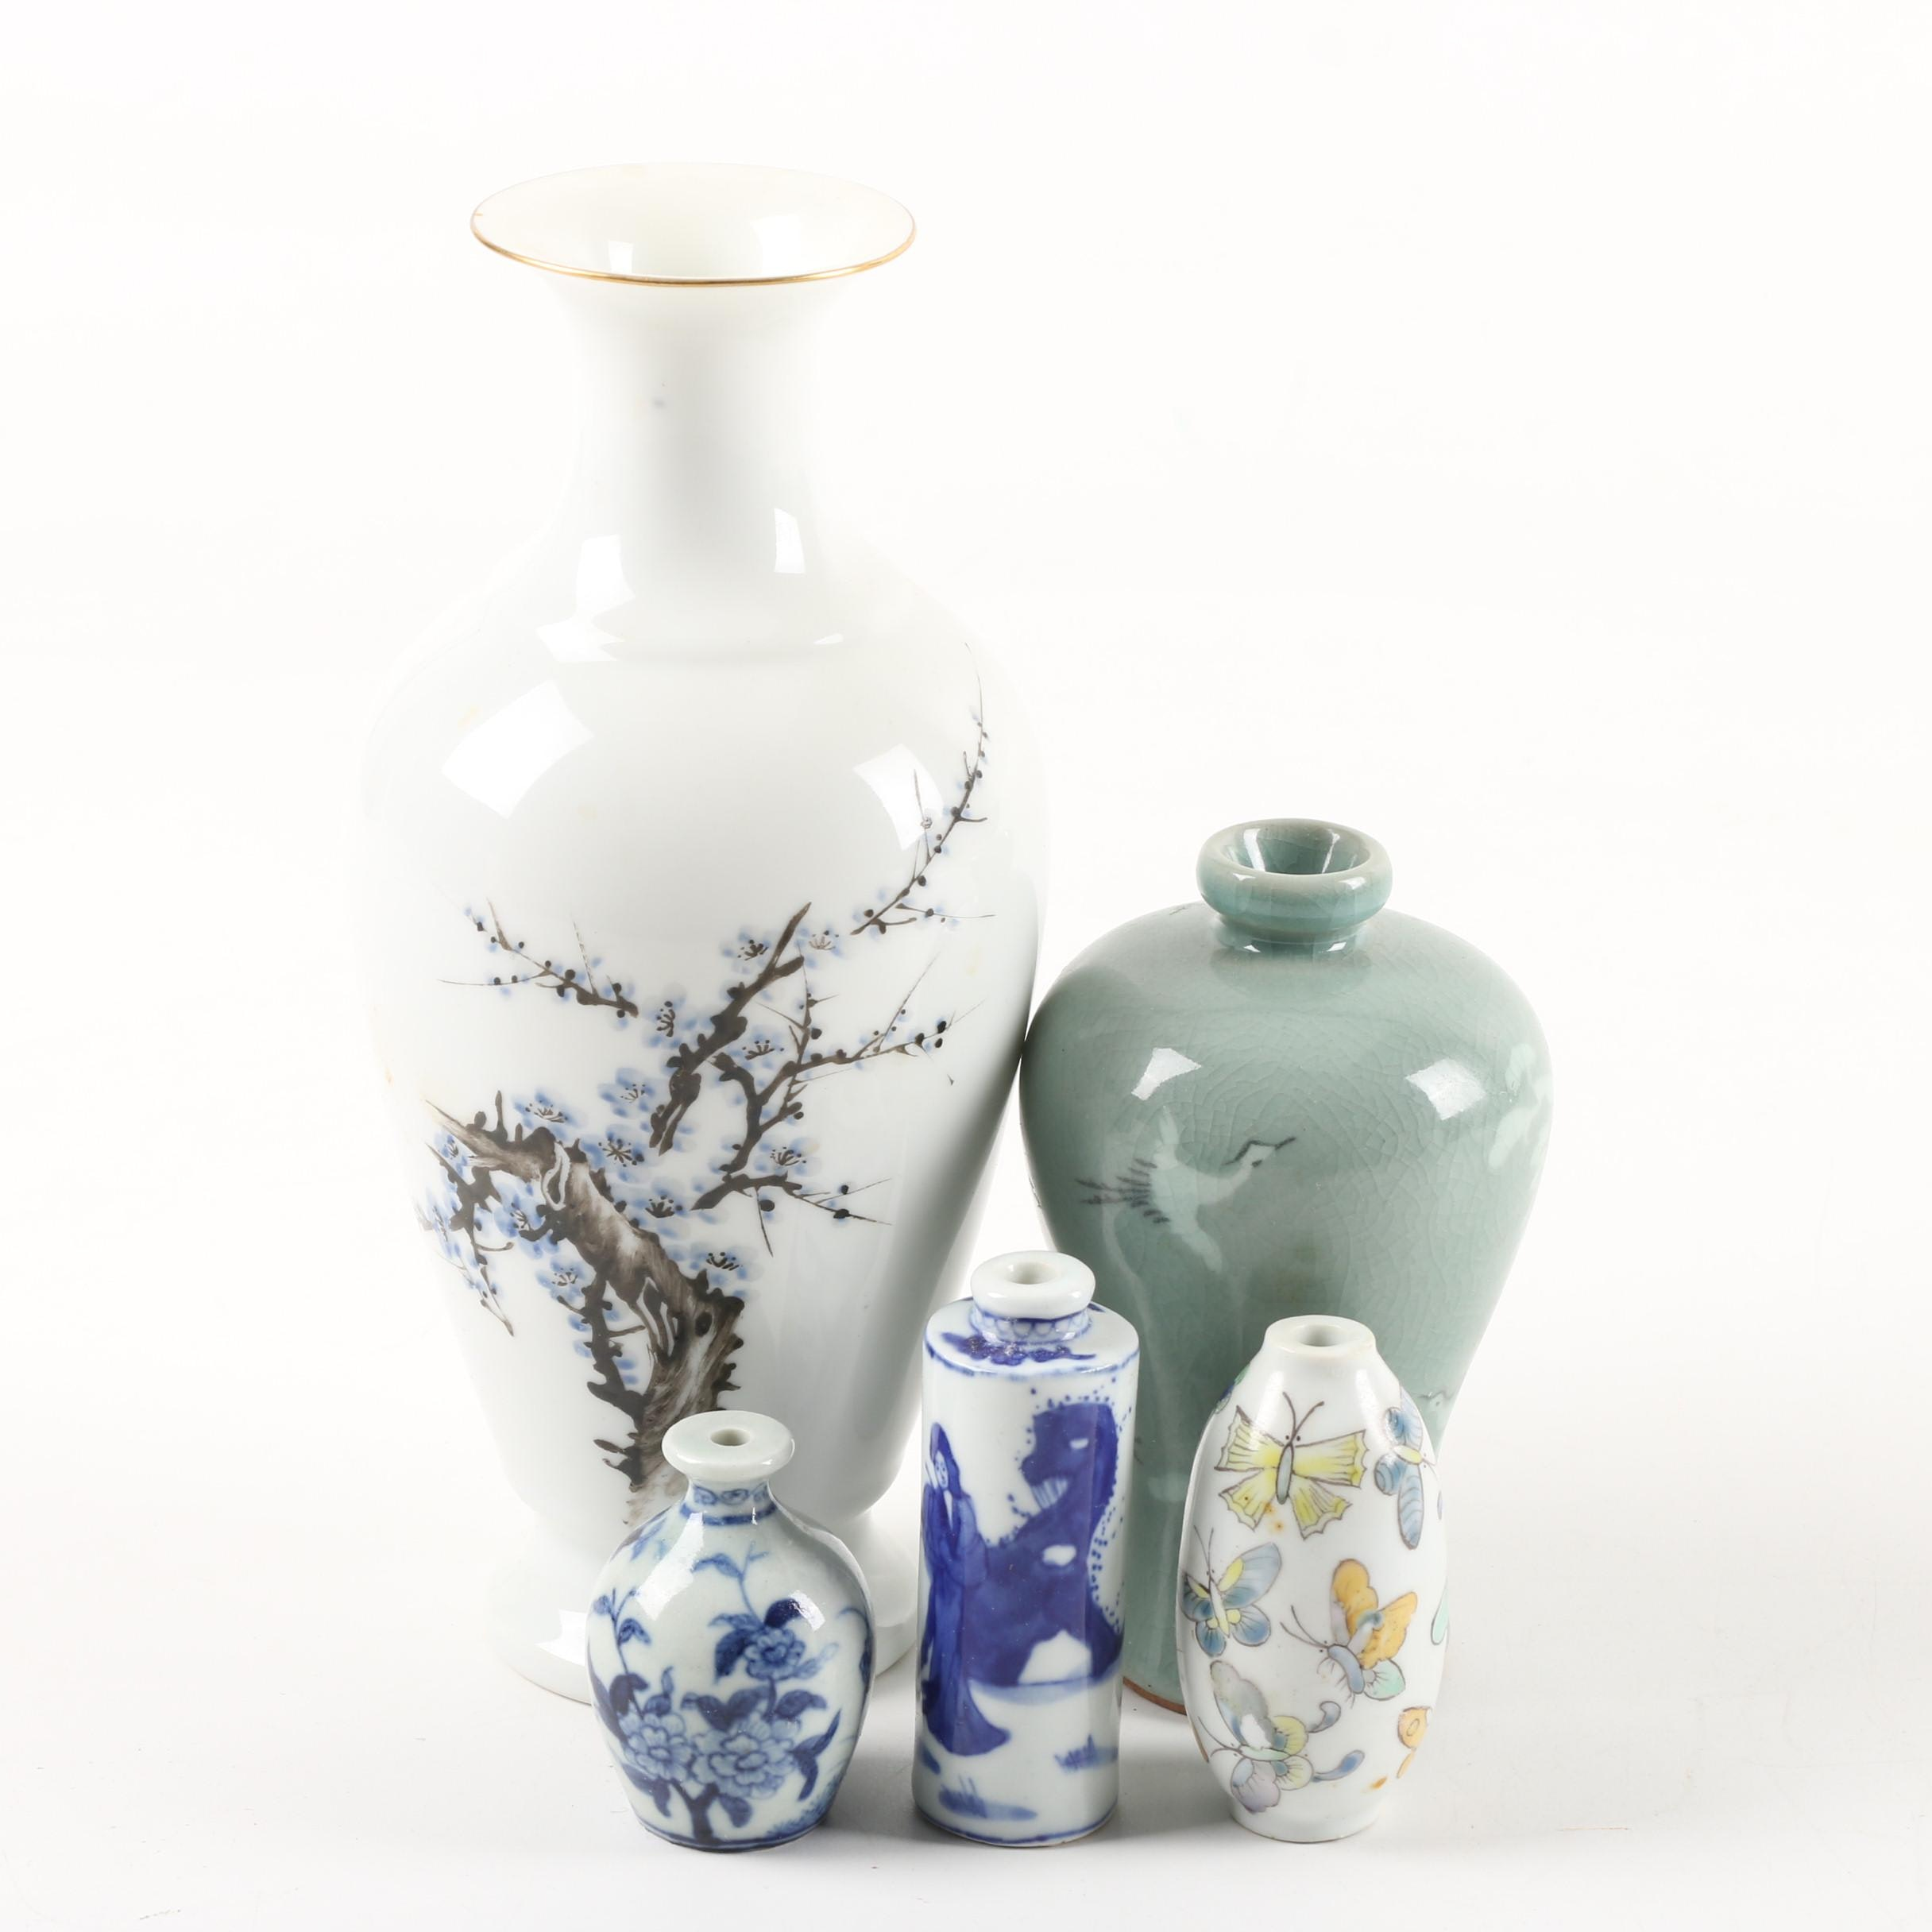 Vintage Asian Porcelain and Ceramic Vases